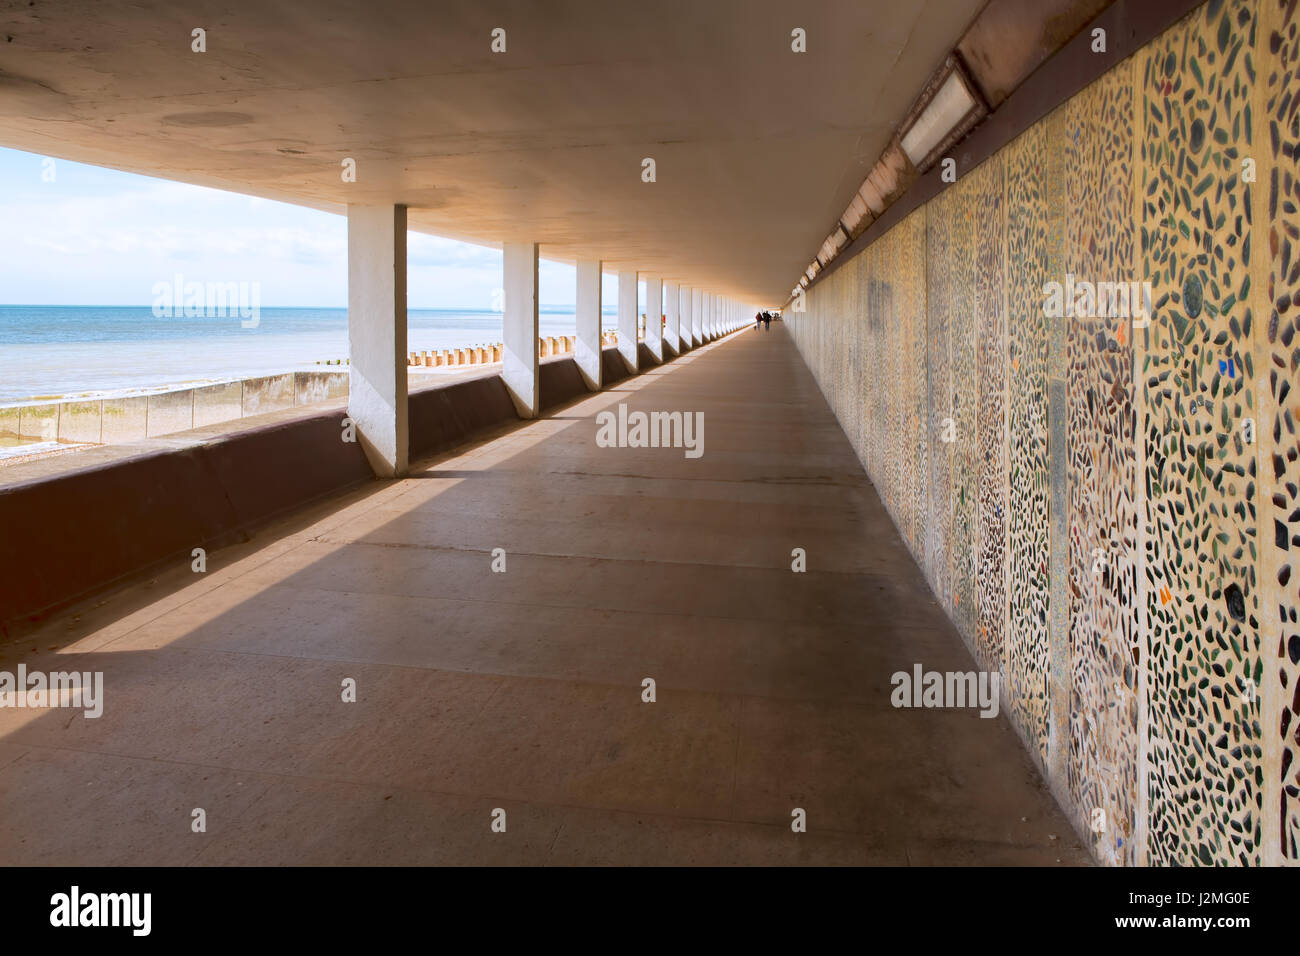 A beach-front covered concrete walkway with mosaic-pattern wall, sea view to one side and strong leading lines away - Stock Image